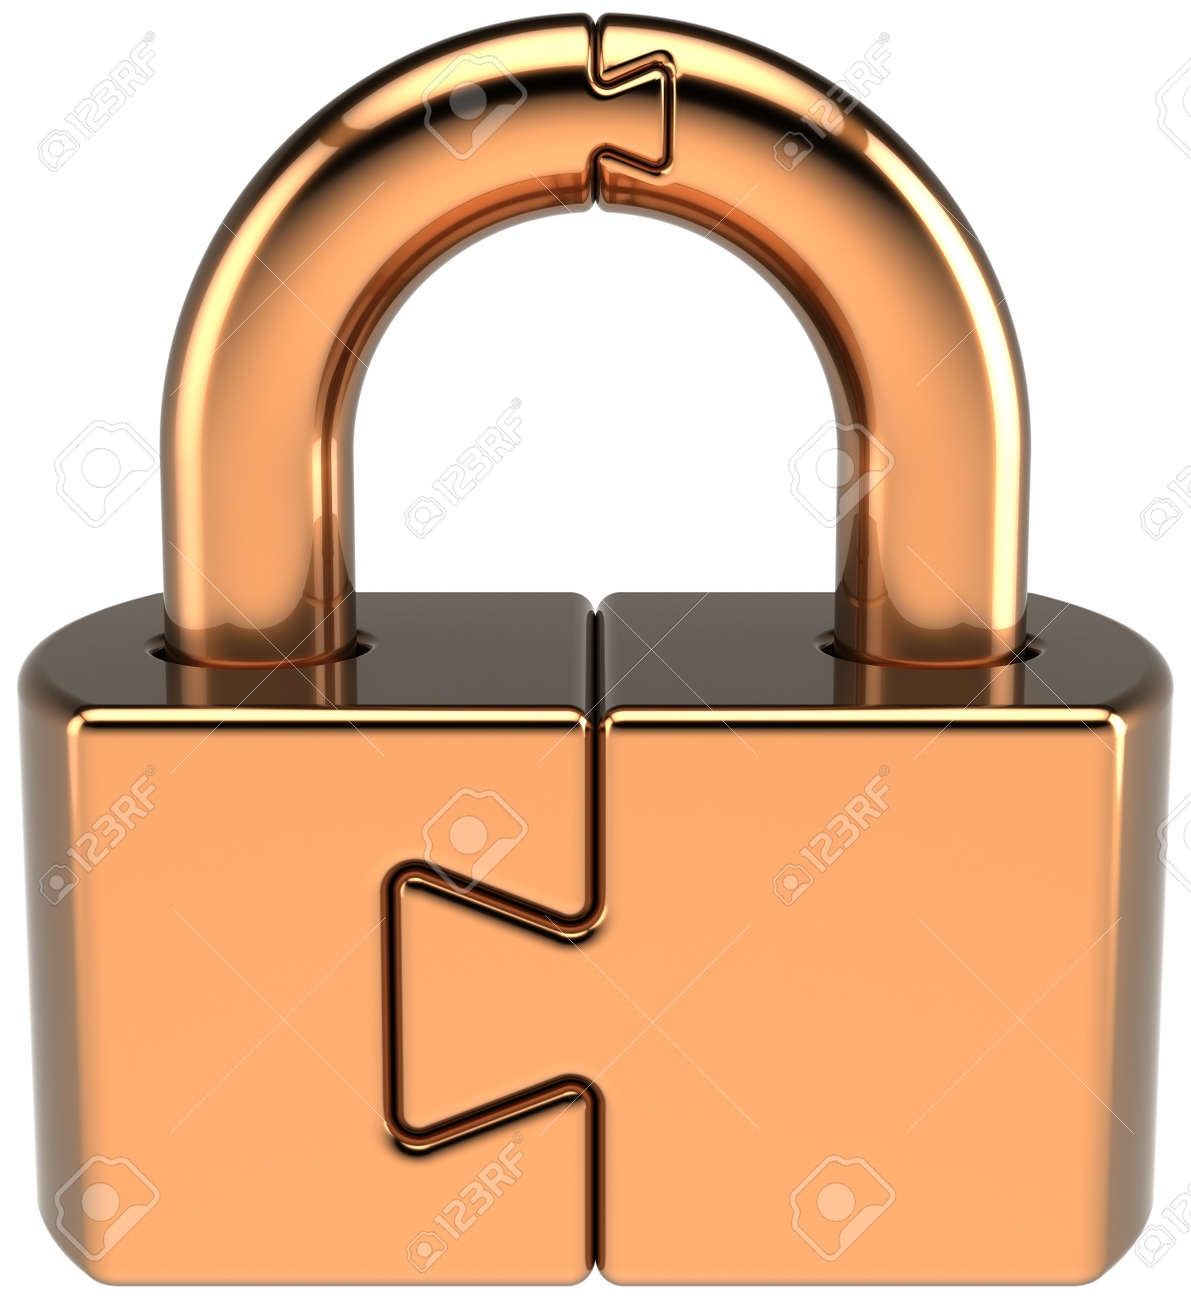 Lock padlock closed guard. Security password hold icon concept. Golden puzzle link secret code encryption abstract. Detailed 3d render. Isolated on white background Stock Photo - 10685192